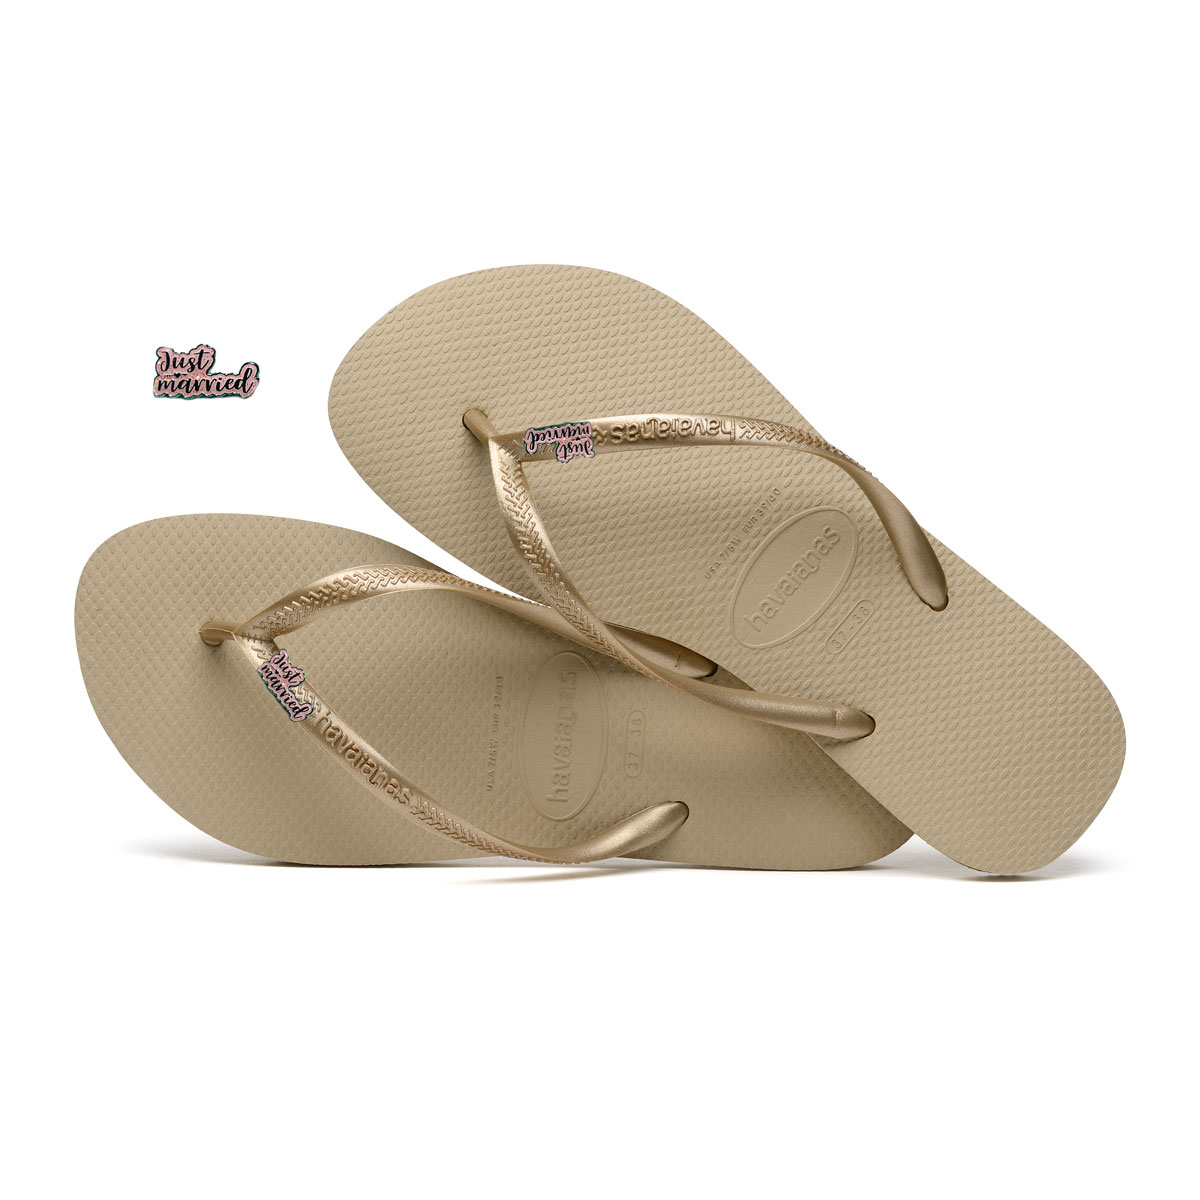 Havaianas Sand Grey Flip Flops with Pink Glitter Just Married Charm